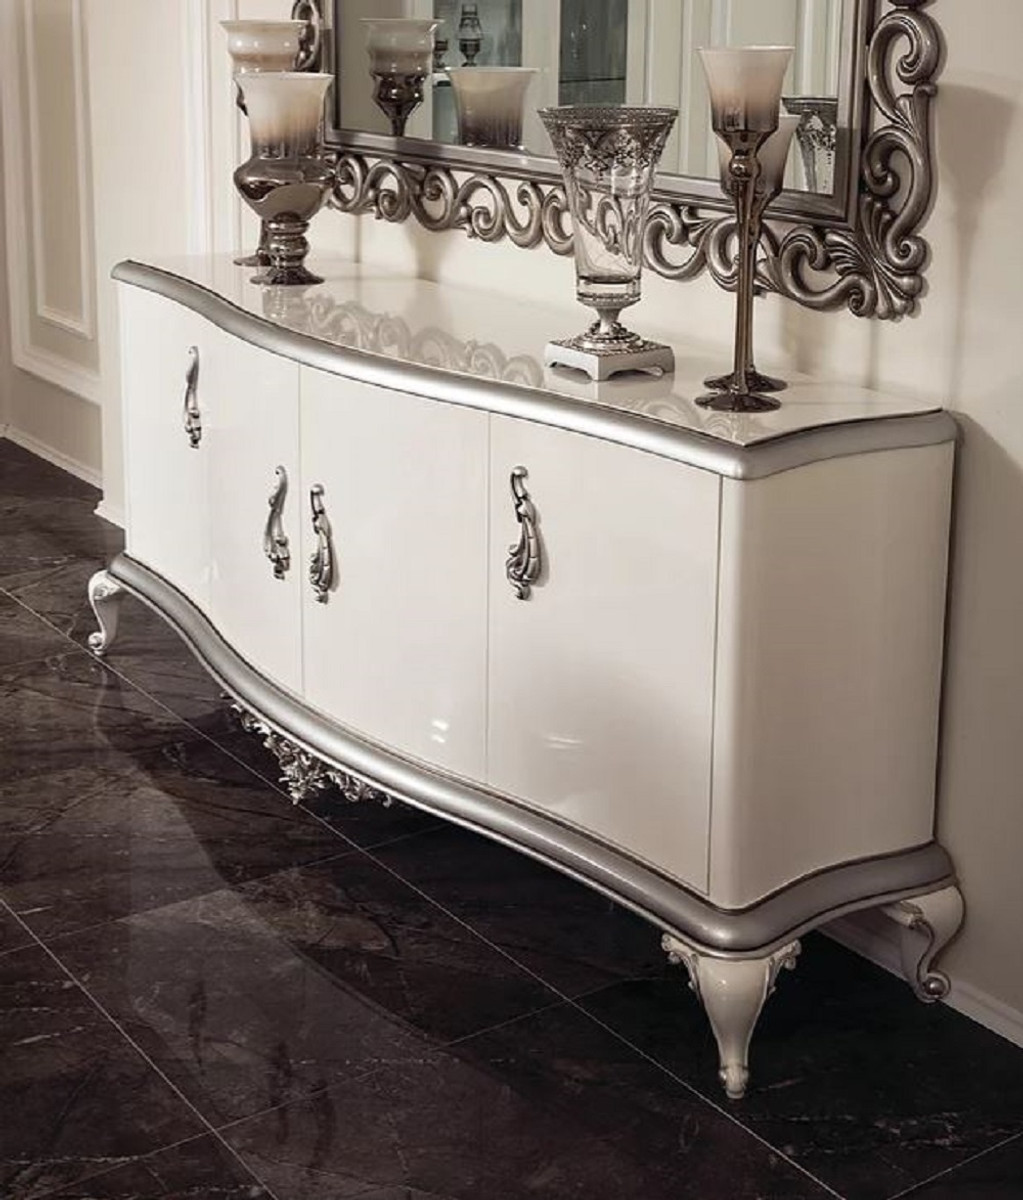 Sideboard Antik Casa Padrino Luxury Baroque Sideboard White / Silver 207 X 54 X H. 90 Cm - Noble Solid Wood Cabinet With 4 Doors - Furniture In Baroque Style |